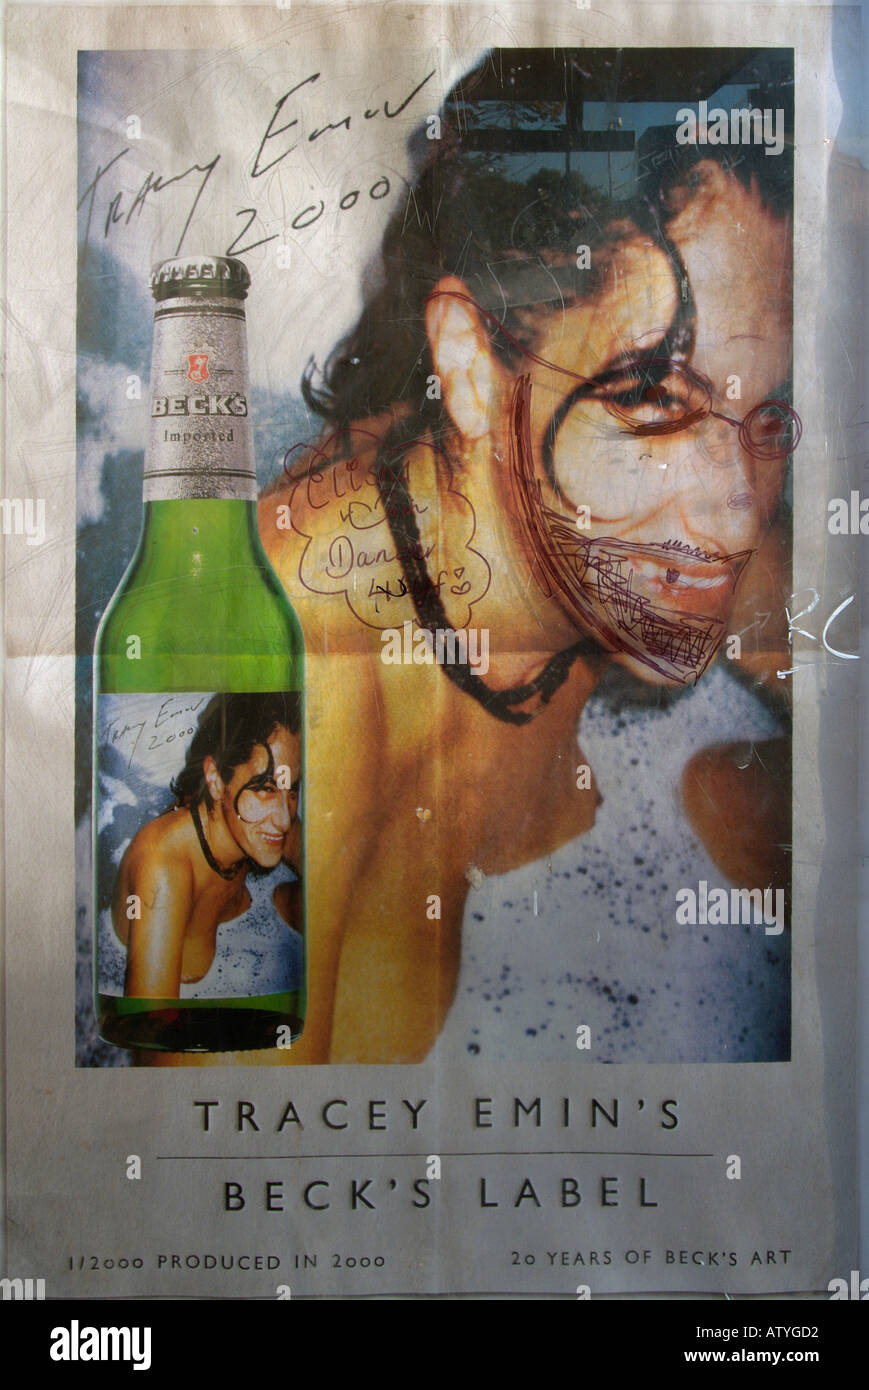 tracy emin poster defaced with graffiti becks beer Stock Photo